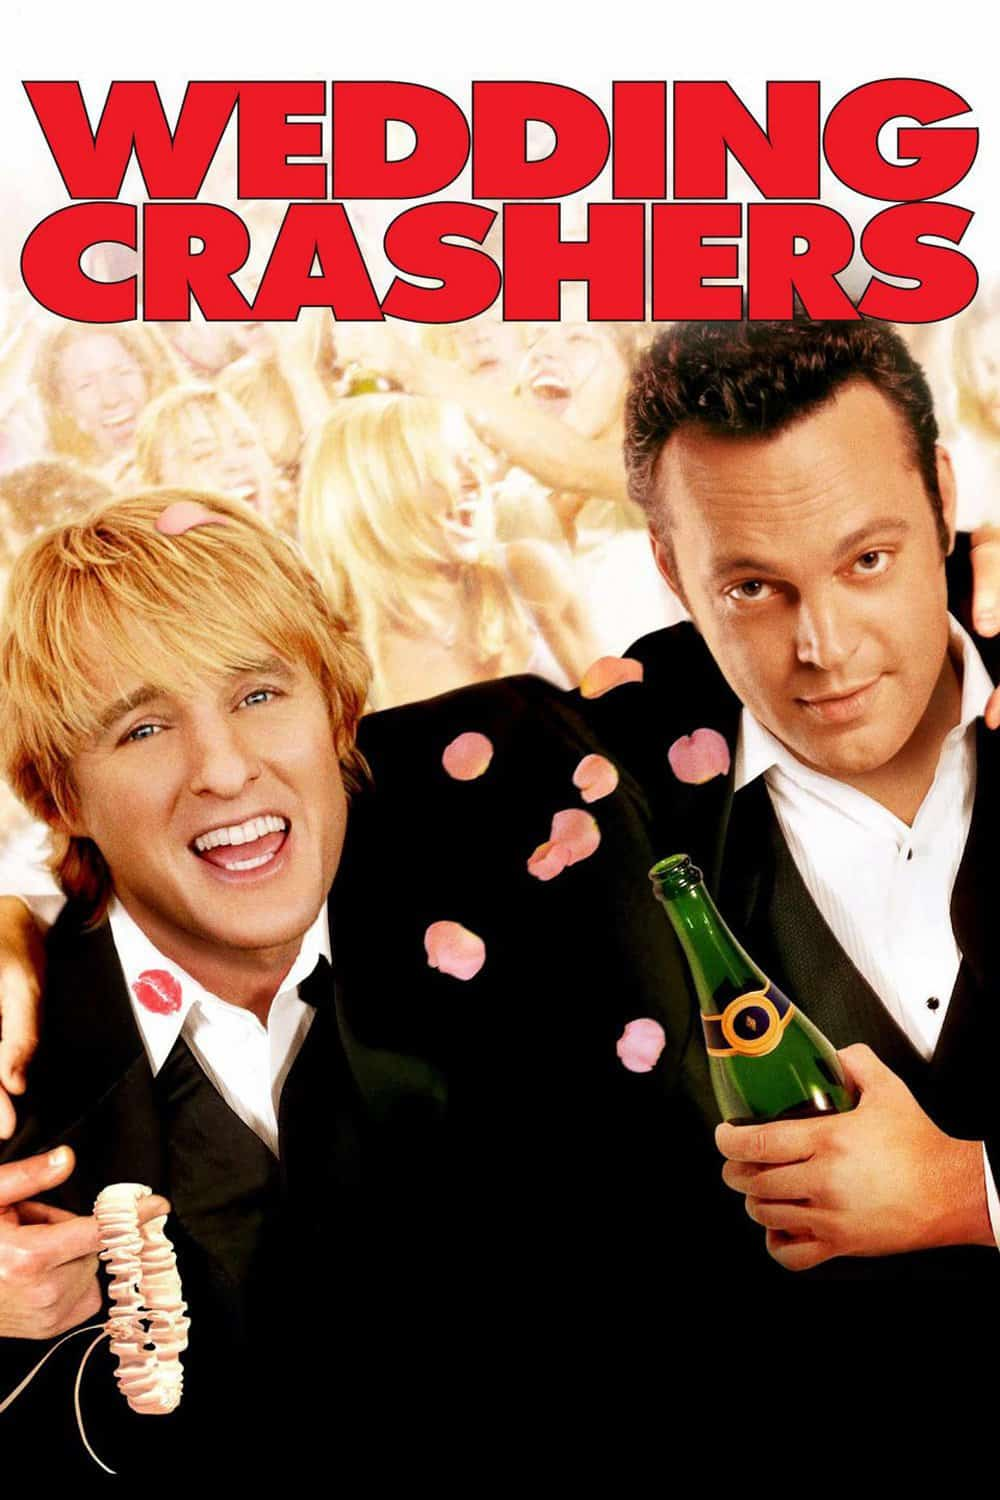 Wedding Crashers, 2005